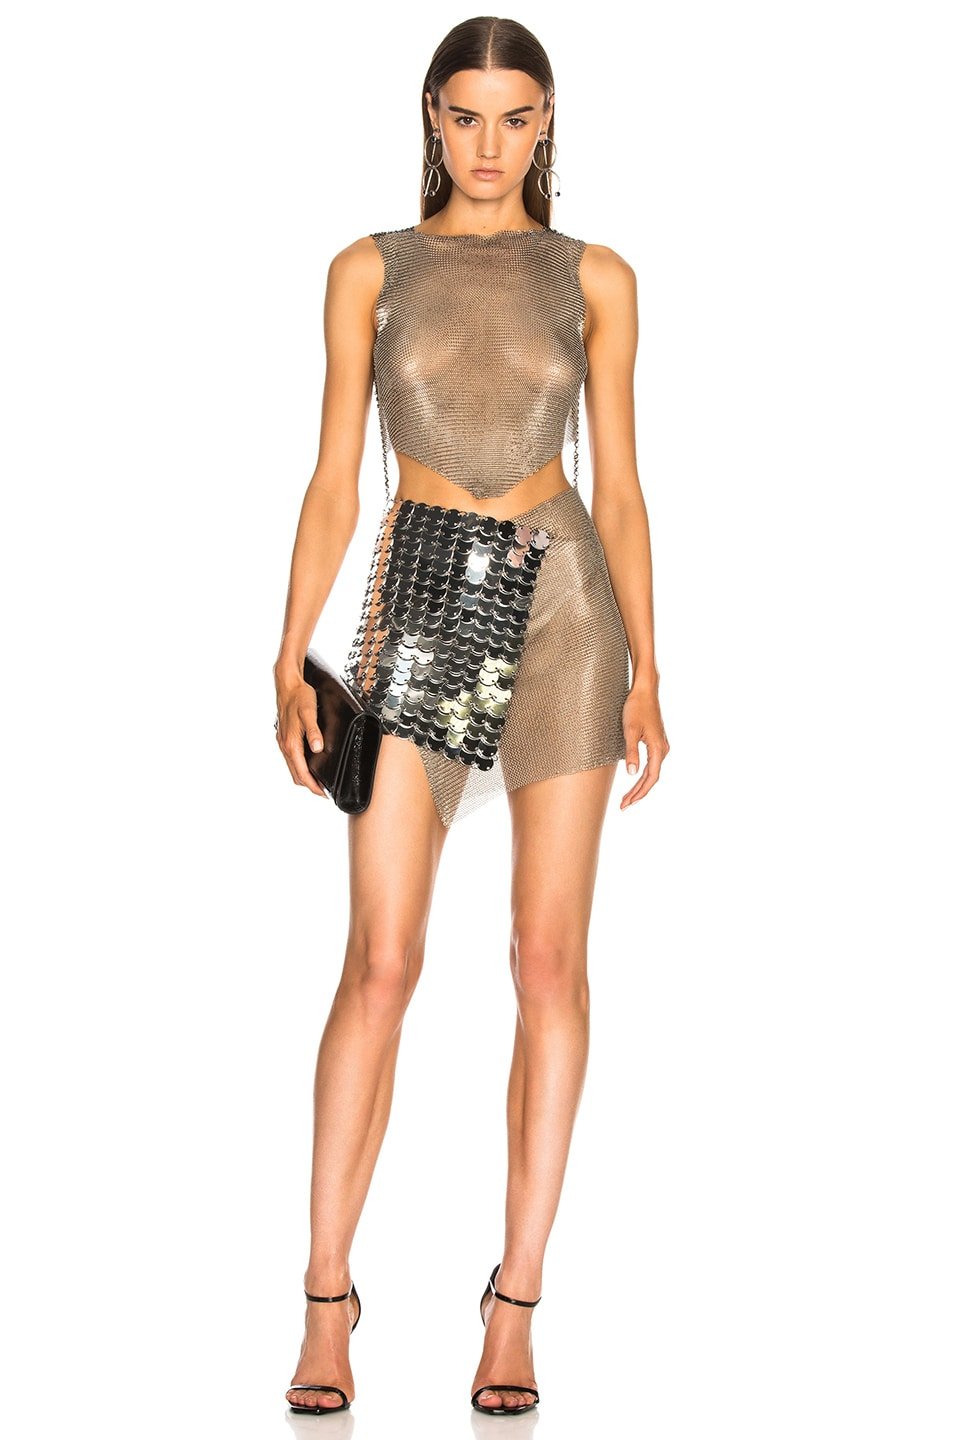 FANNIE SCHIAVONI Fannie Schiavoni Mesh And Scale Dress In Metallic Silver